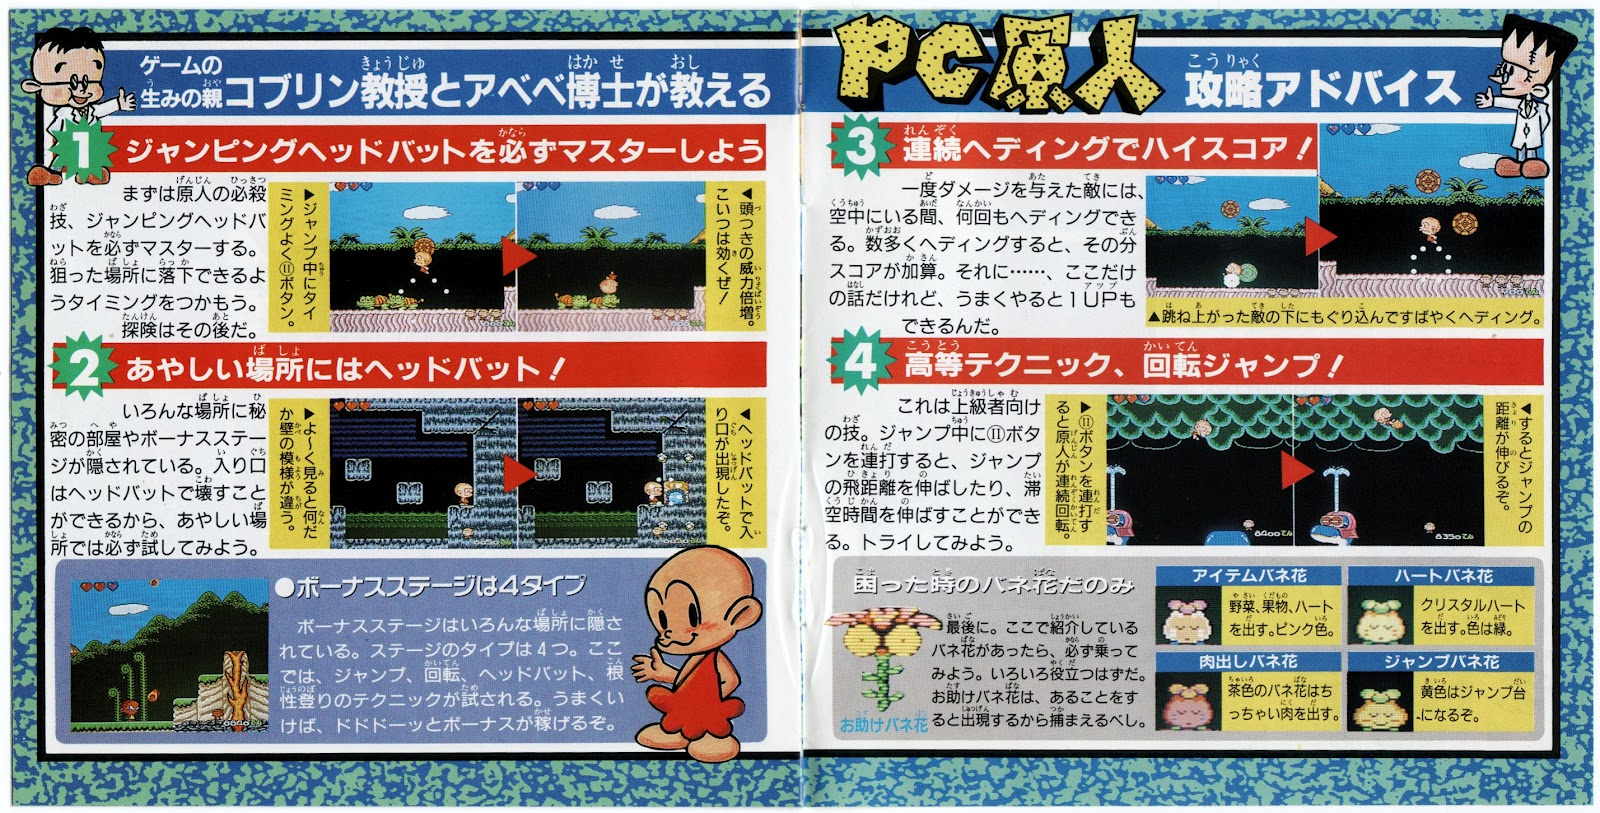 the gay gamer manual stimulation pc genjin pc engine rh thegaygamer com pc game supply manual approval sea dogs pc game manual